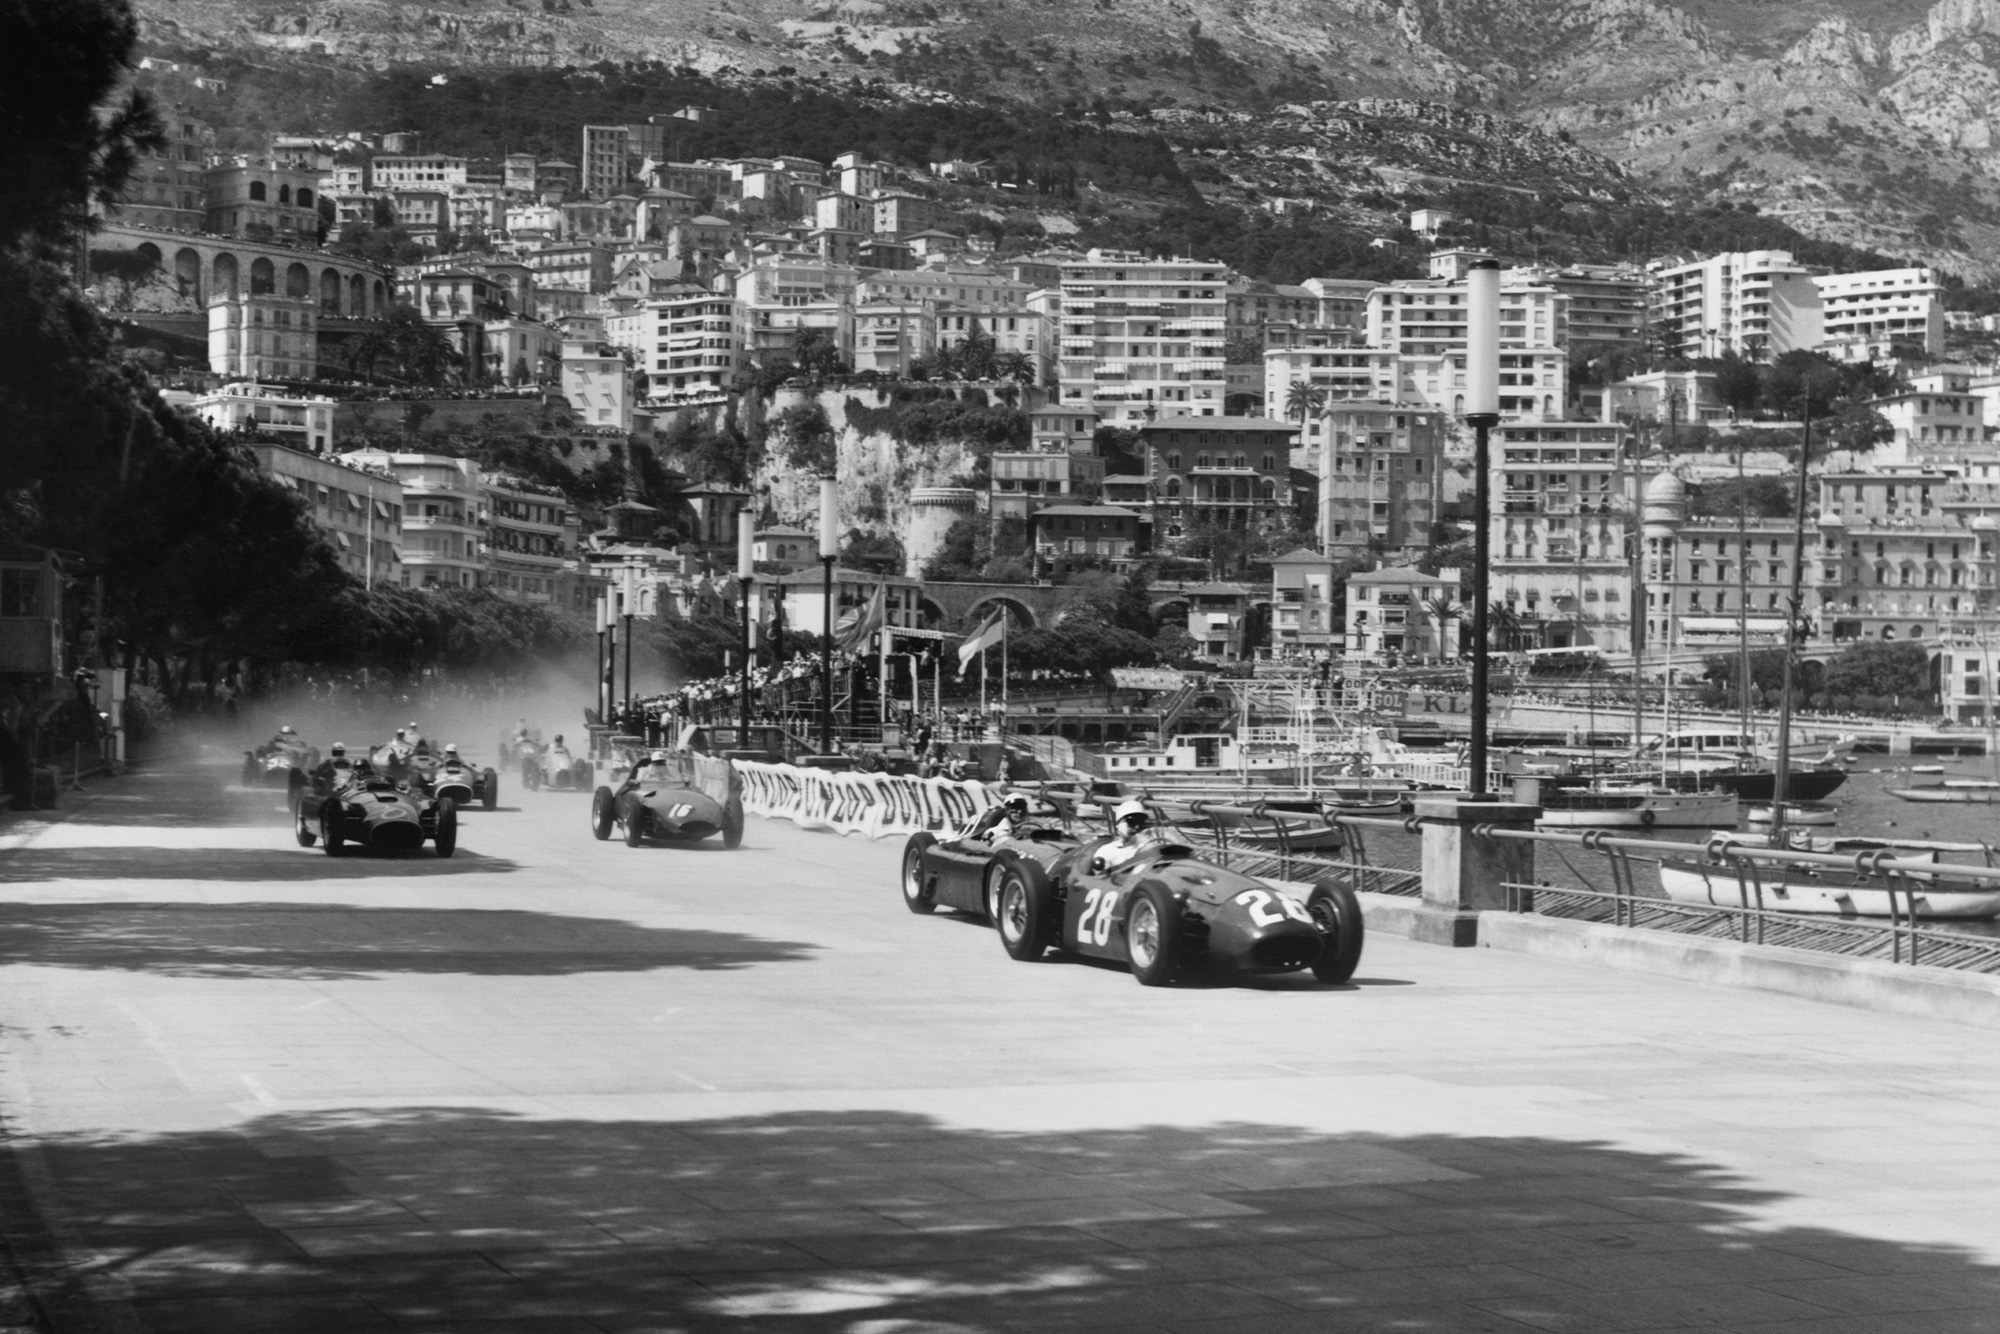 Stirling Moss leads at the start